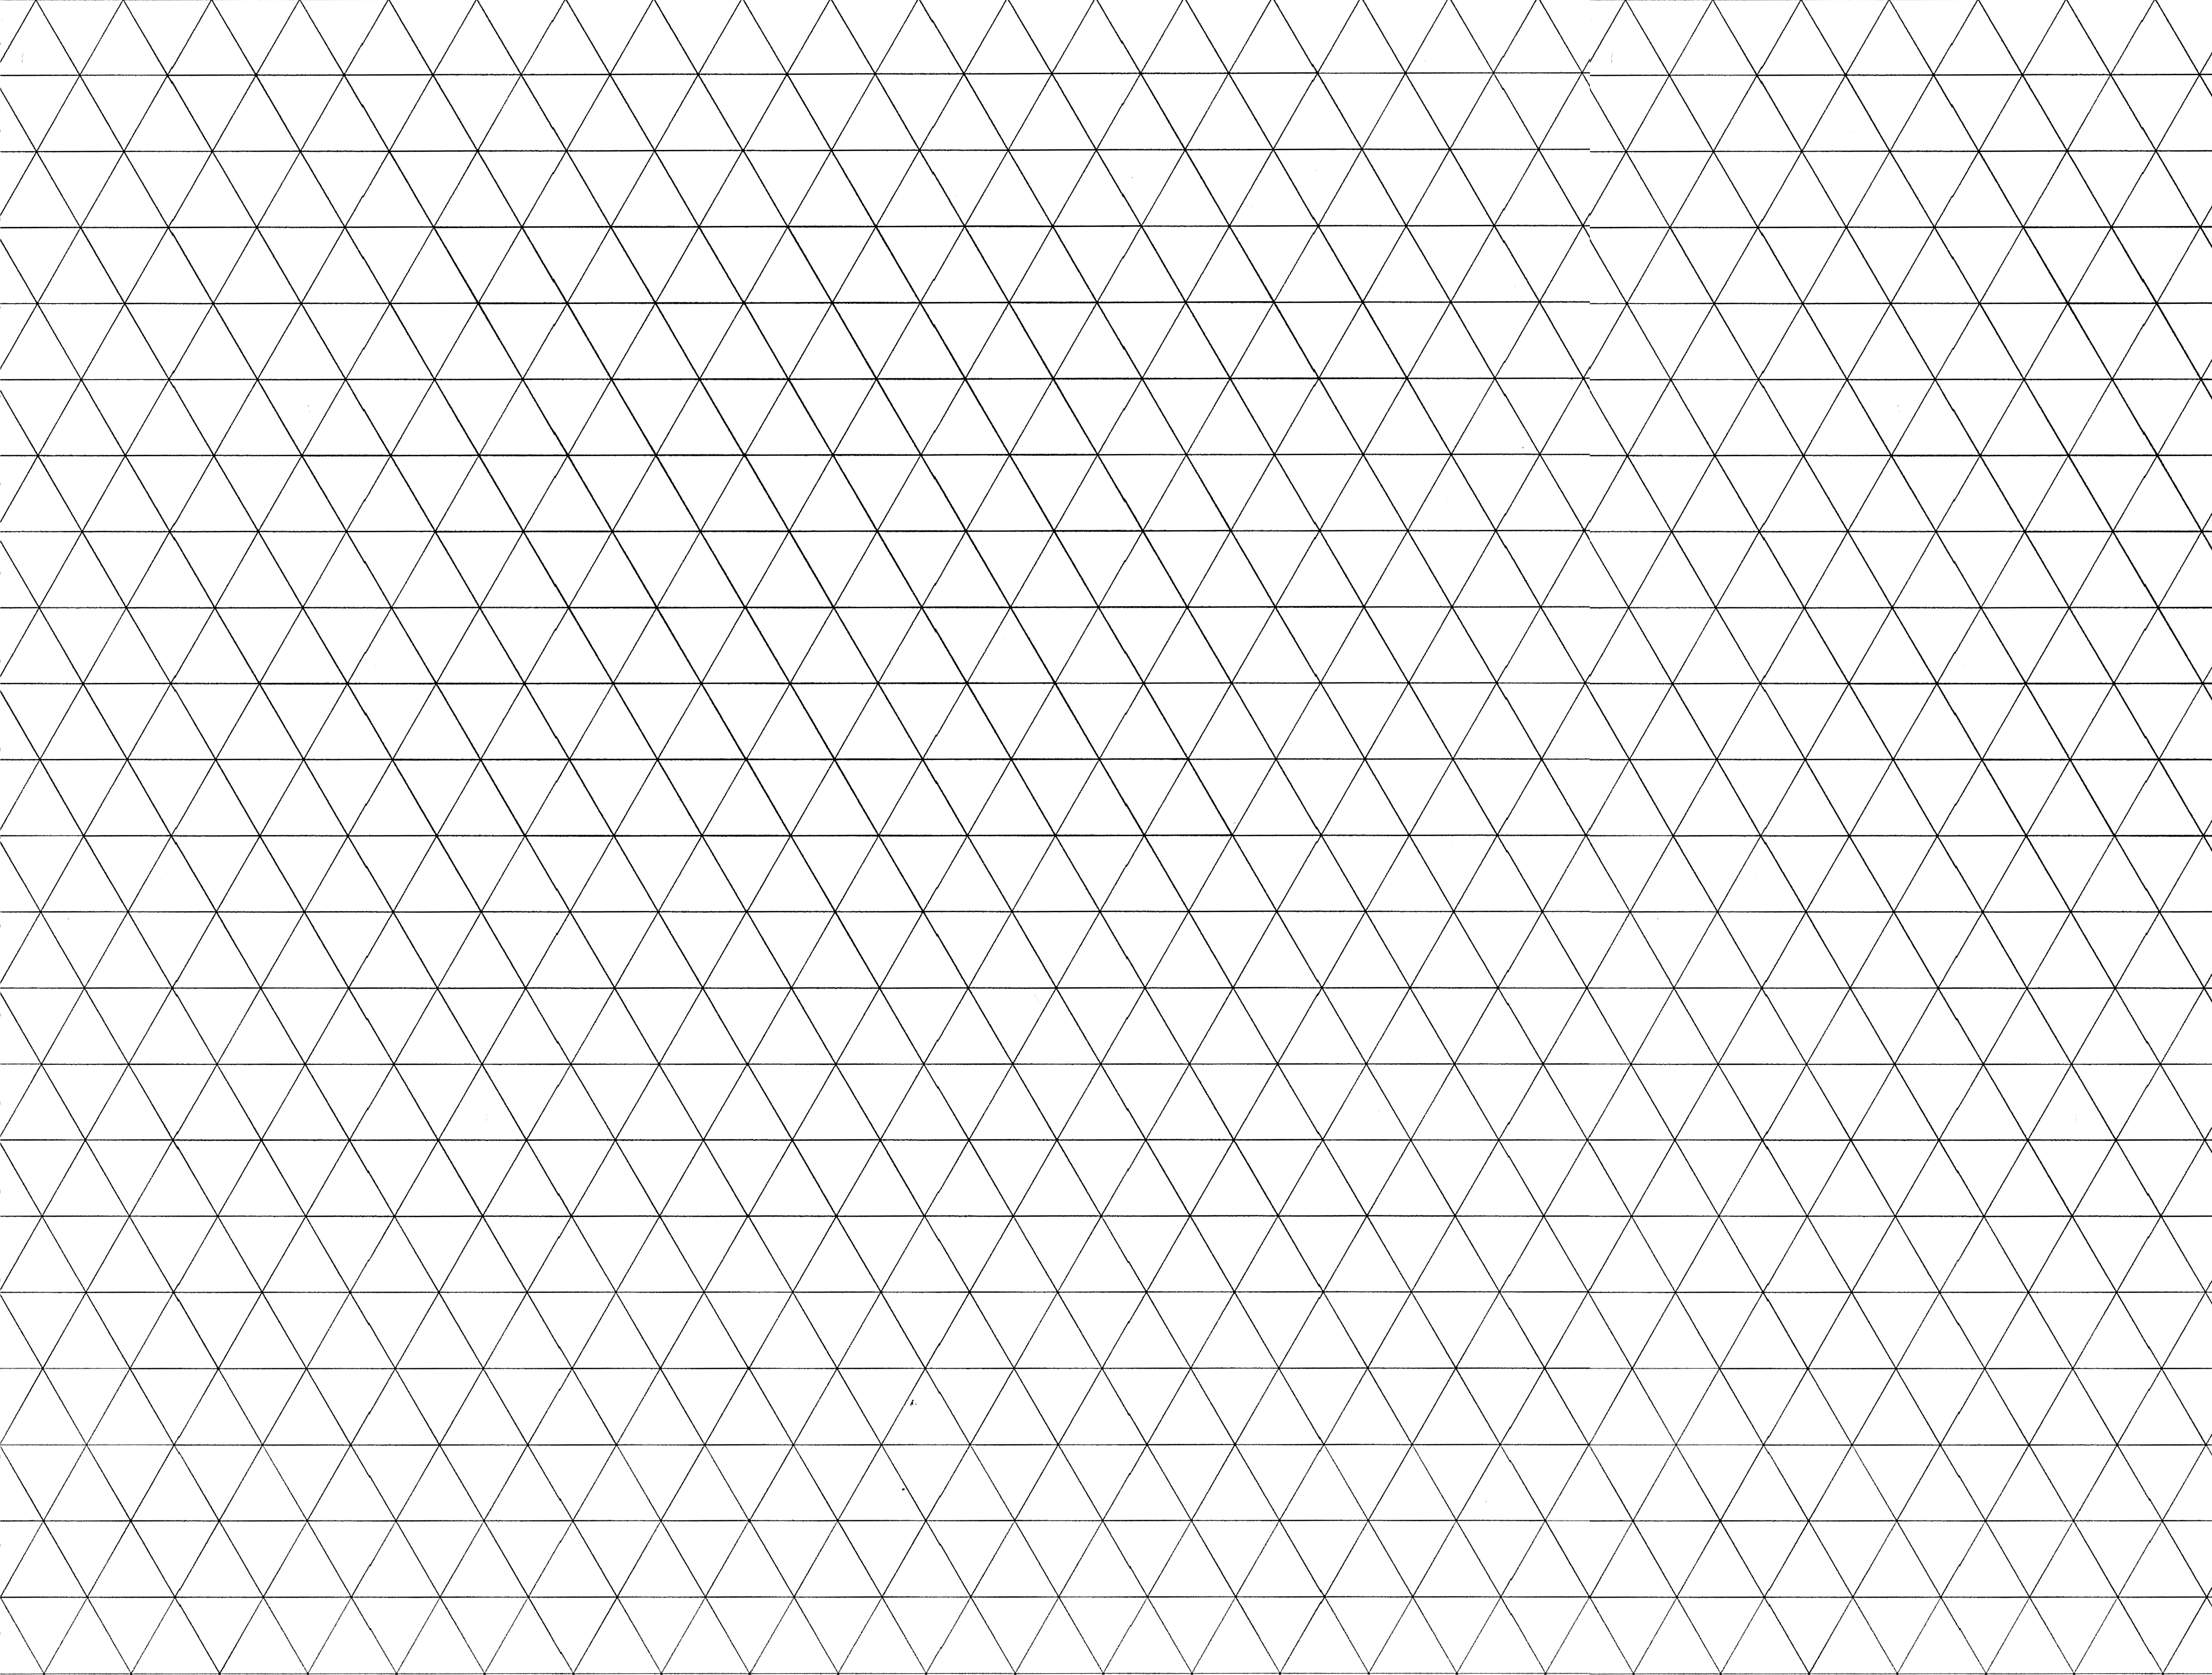 dot paper template - Selo.l-ink.co